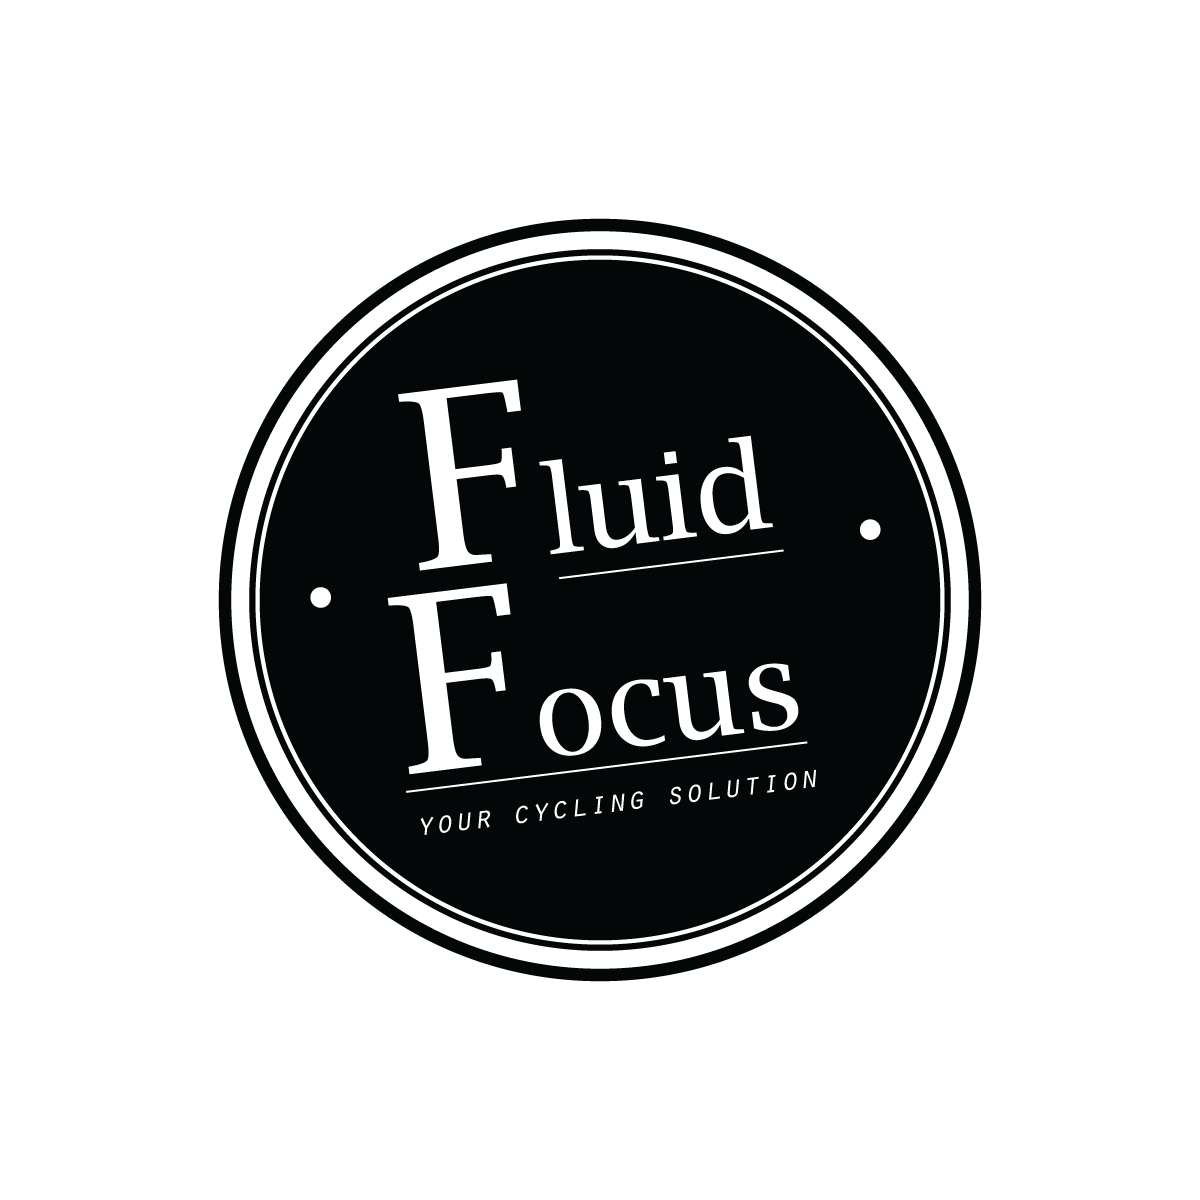 Fluid Focus, LLC